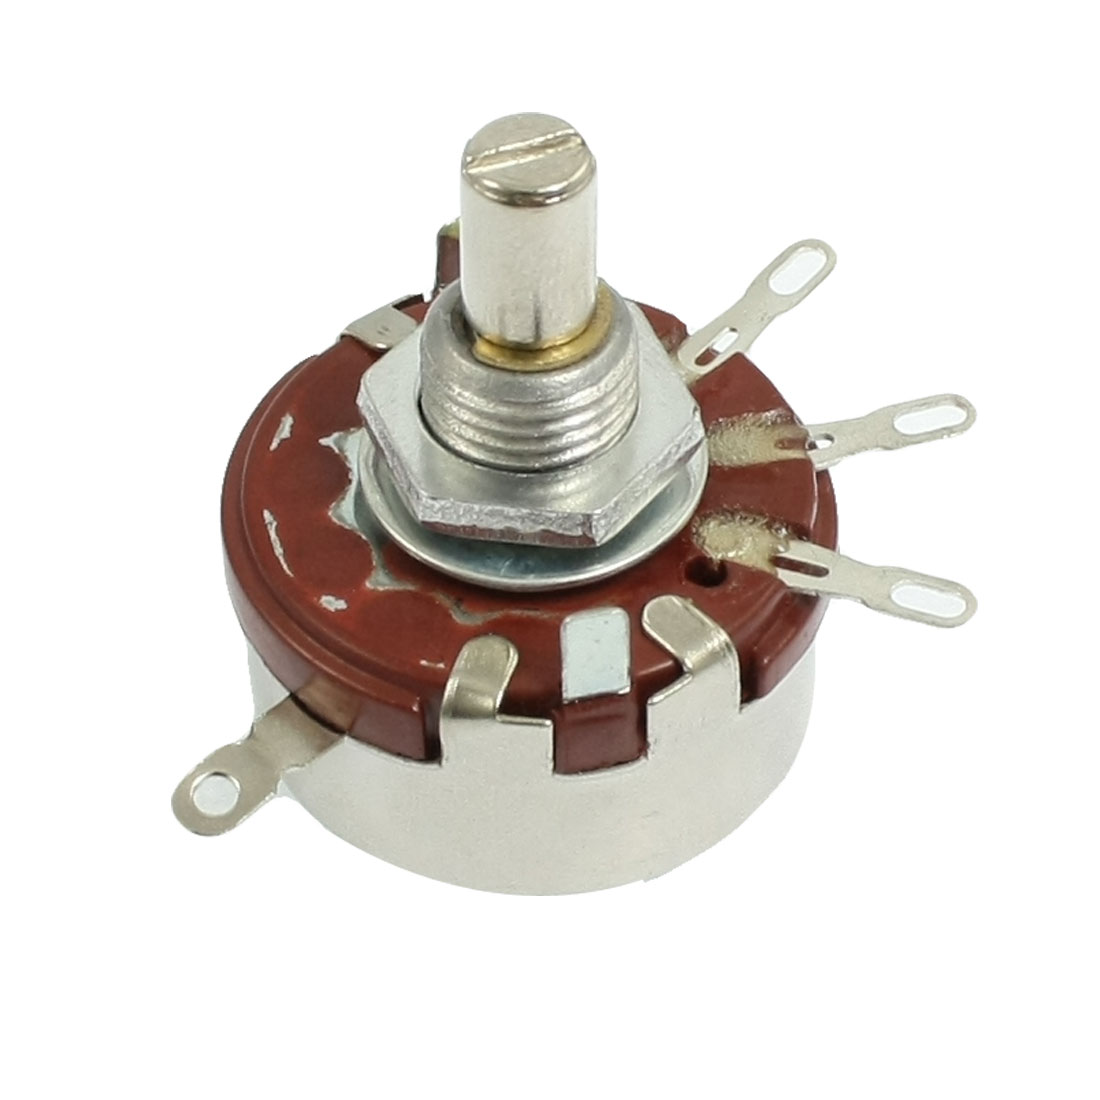 2W 4.7K ohm 3 Terminals Single Linear Taper Rotary Potentiometer - image 1 of 1